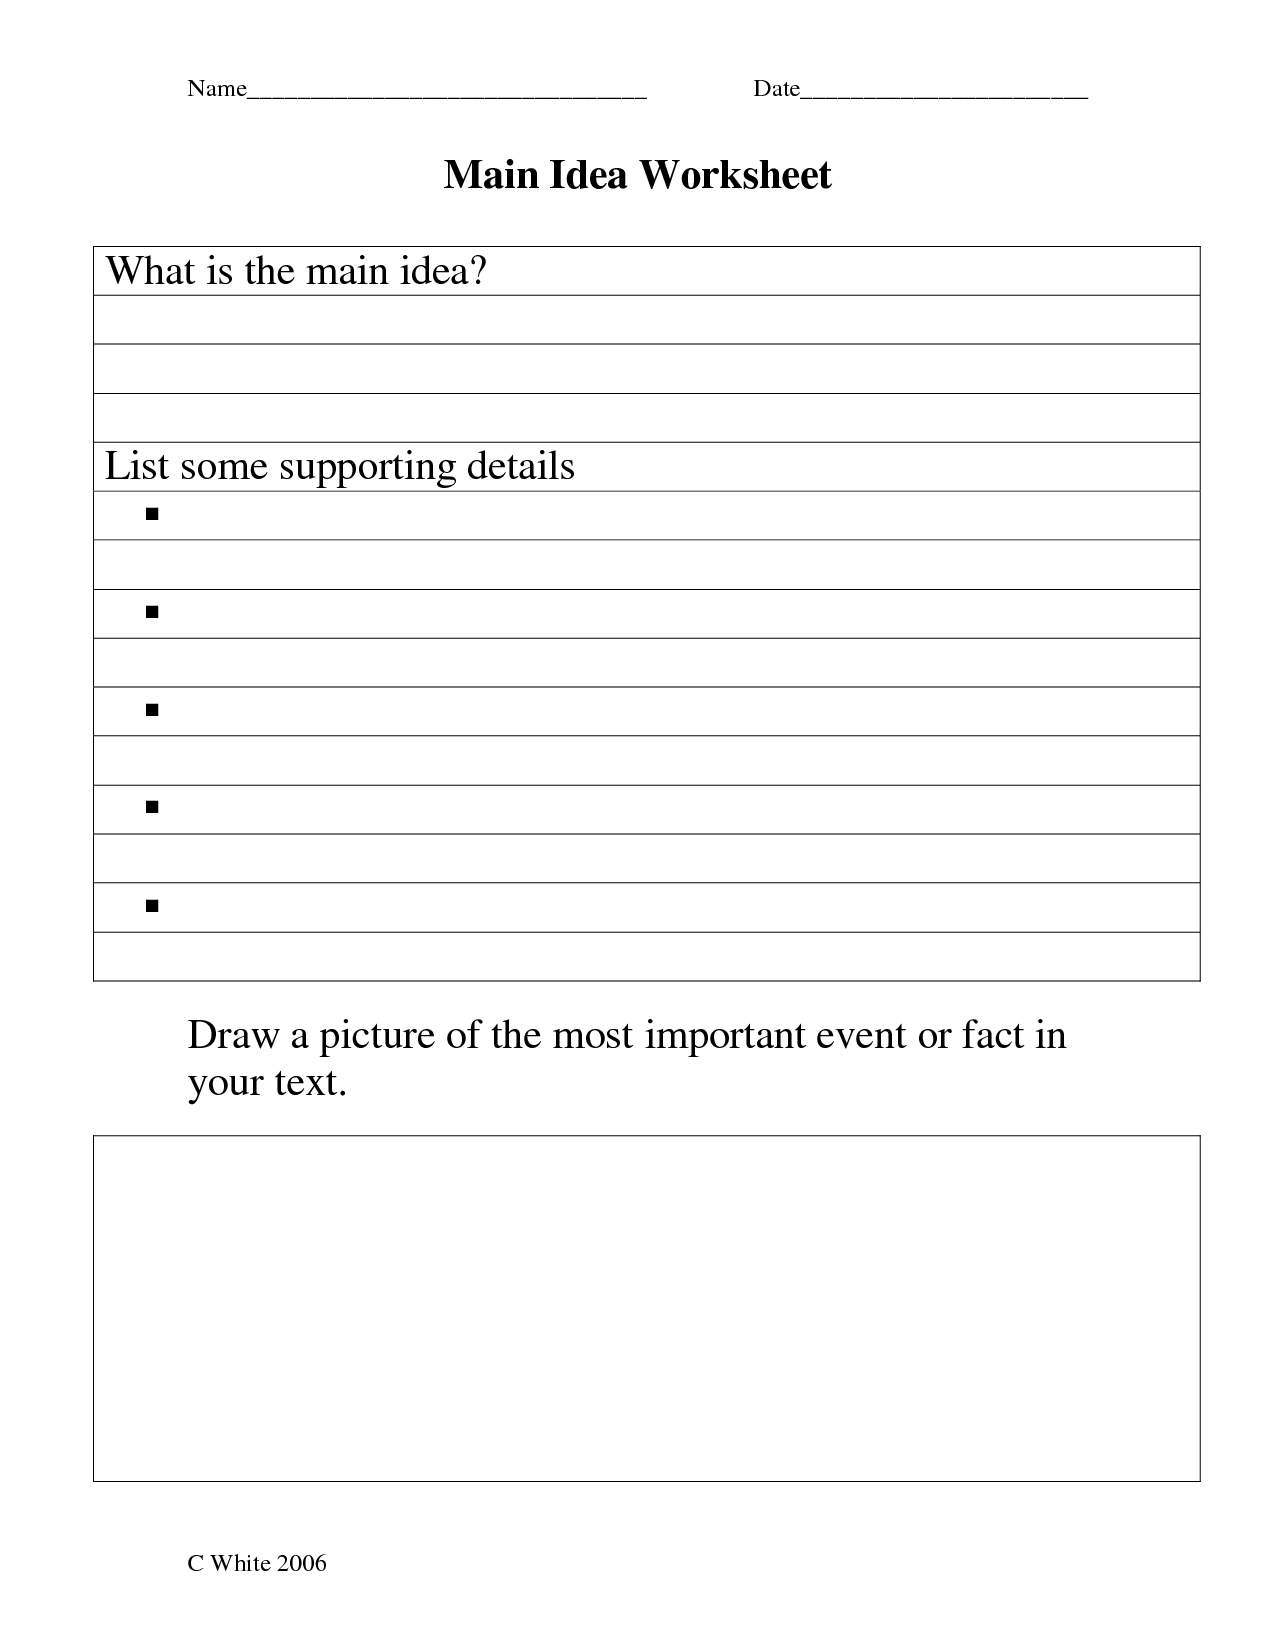 Main Idea Worksheets 5th Grade